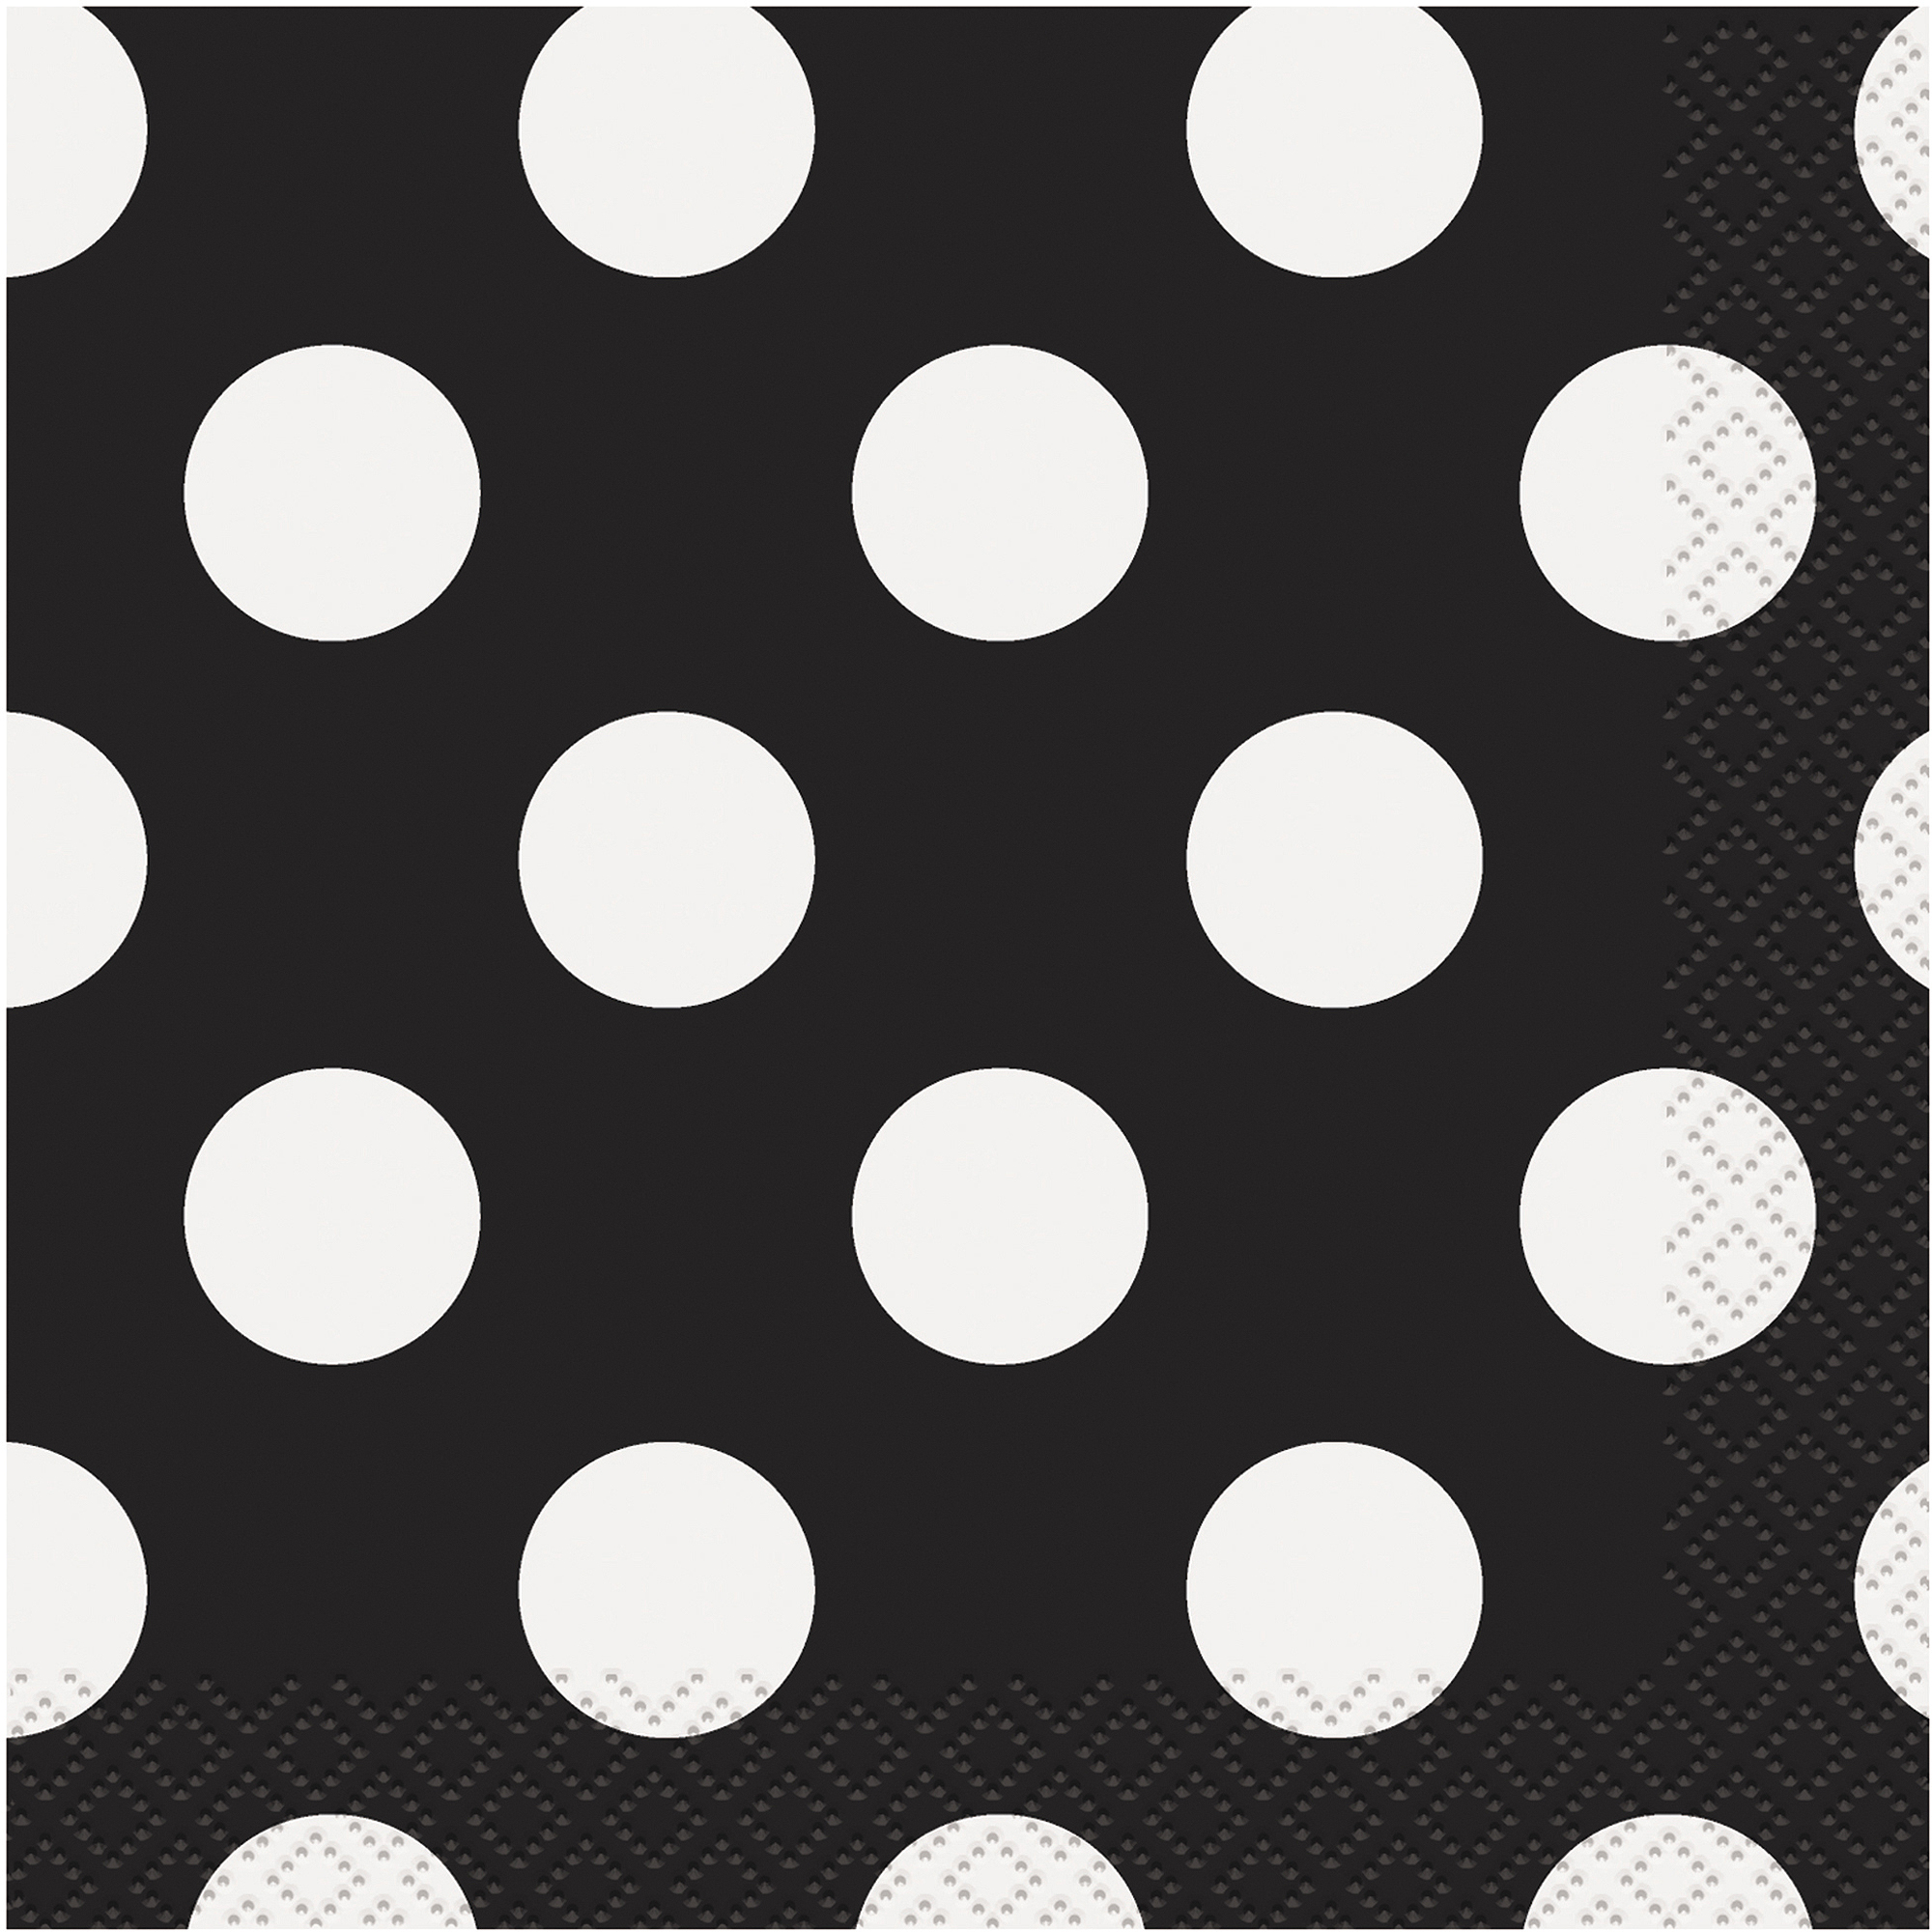 Black Polka Dot Beverage Napkins, 40pk